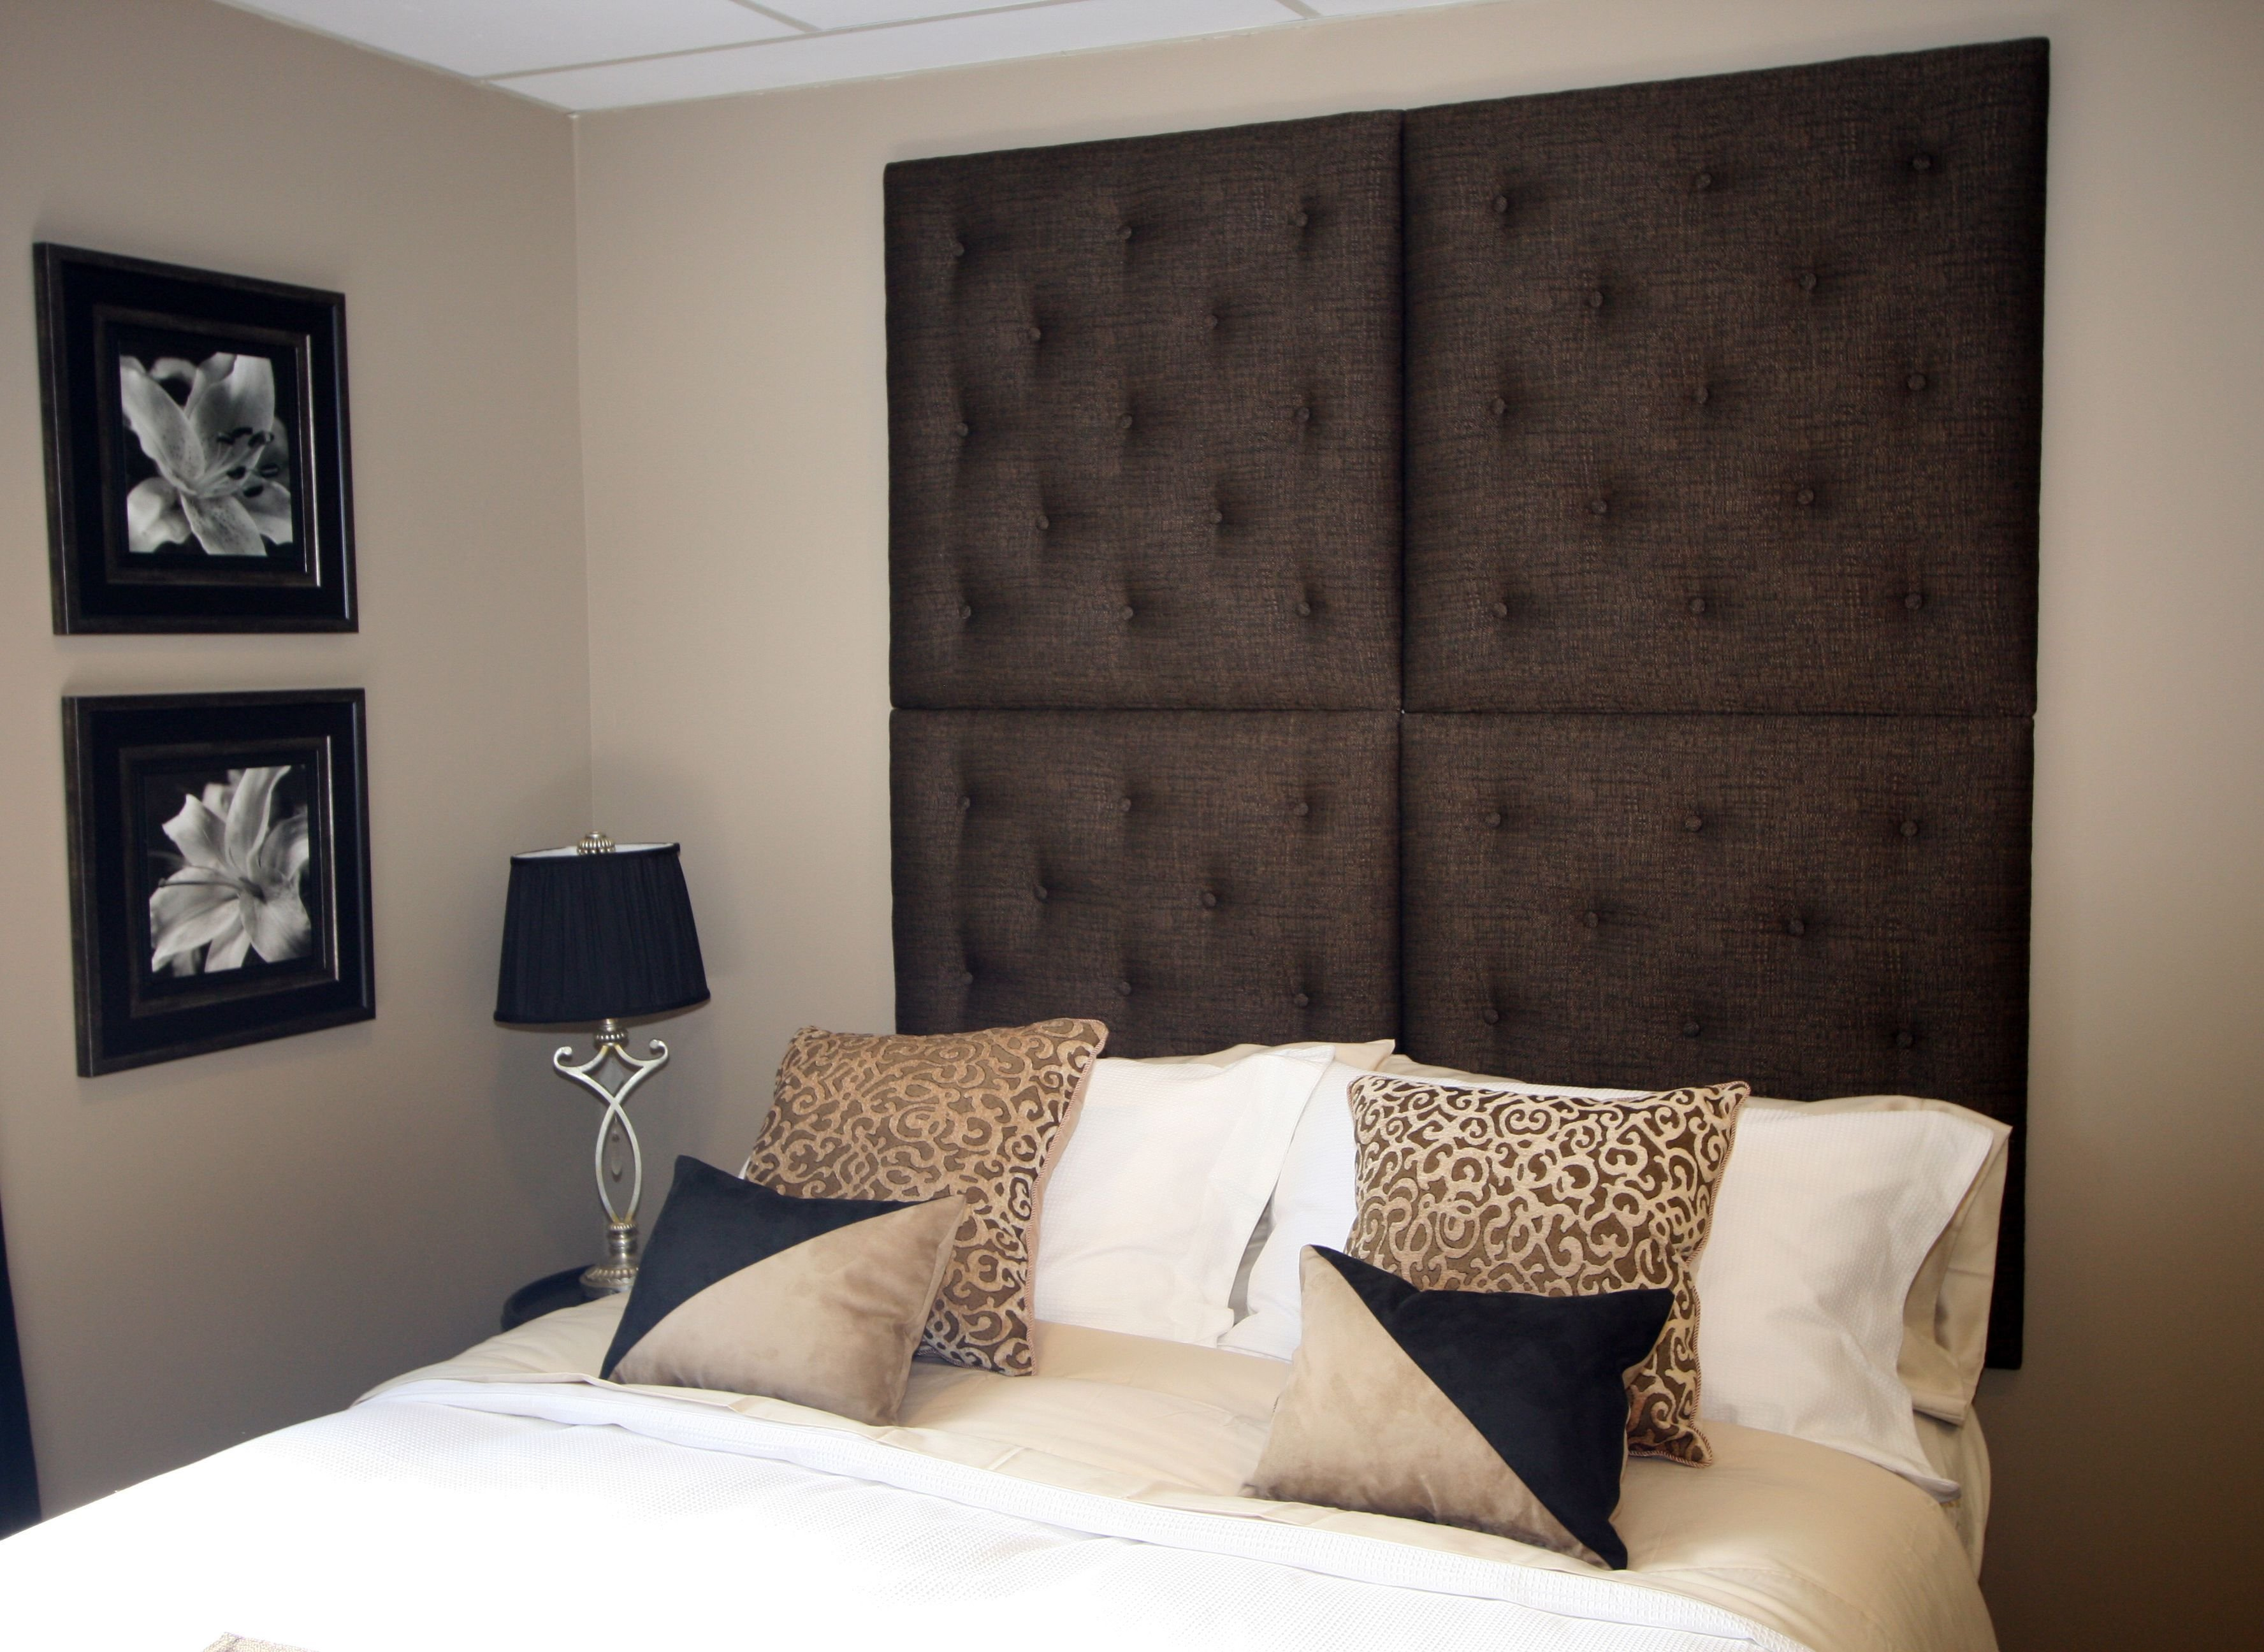 Best Padded Walls Wall Huggers Designer Chic Upholstered Wall Panels Headboards Ayr With Pictures